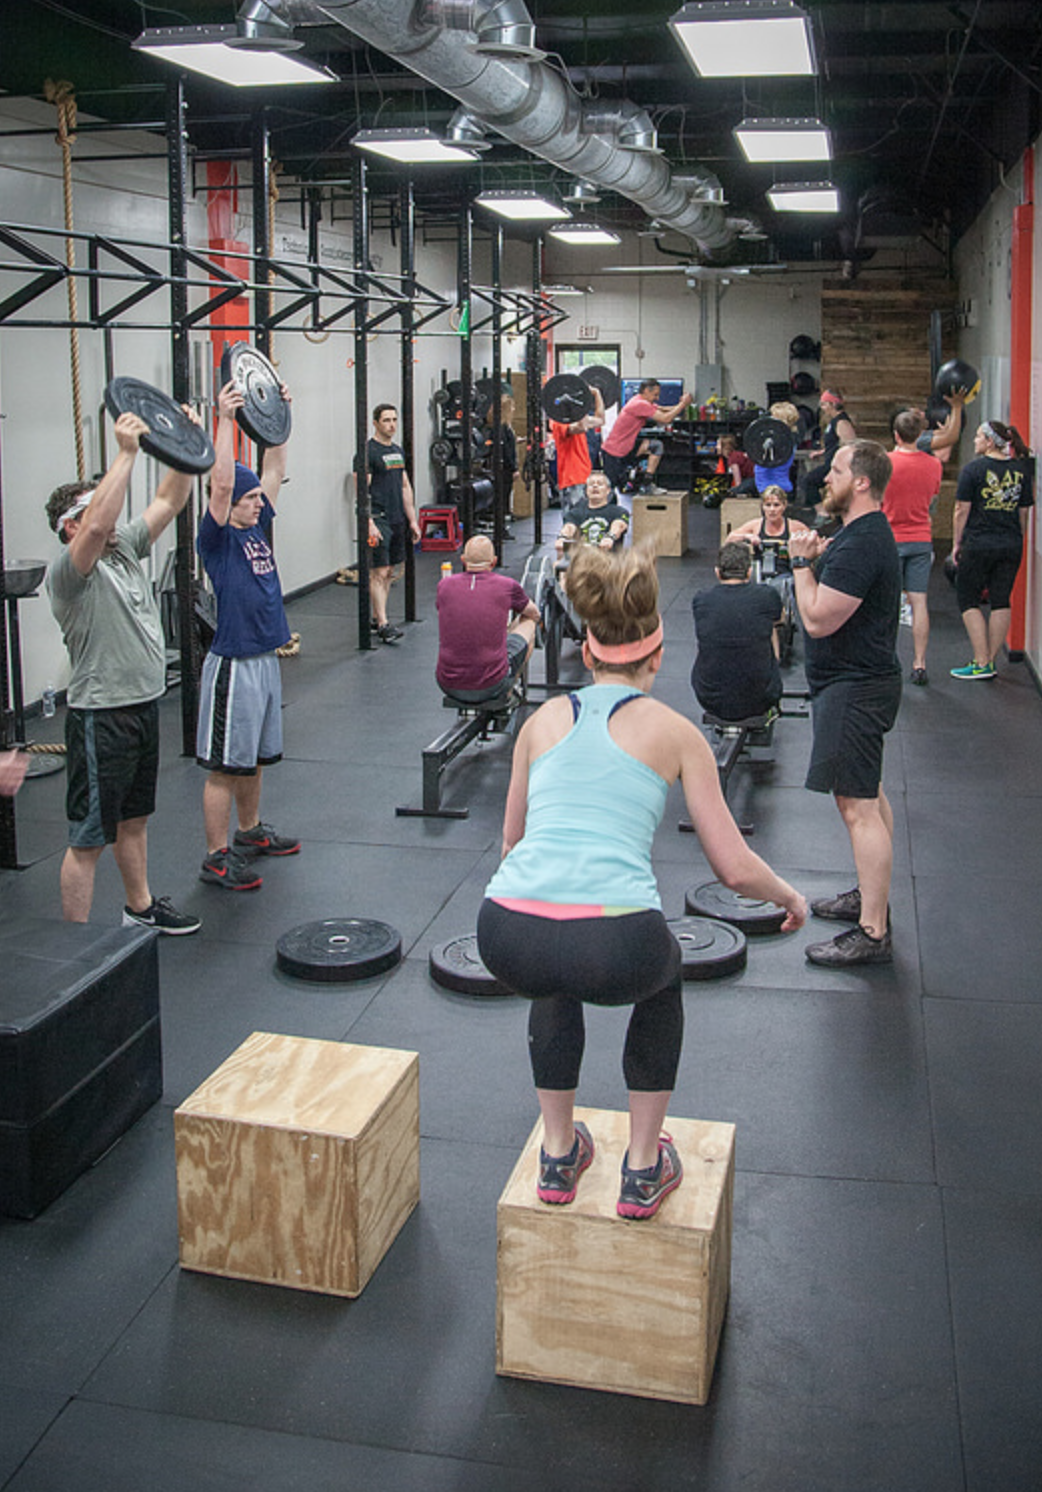 CrossFit 101 - All new members will go through our CrossFit 101 program before joining CrossFit classes. Over the course of four private personal training sessions ($240 value), a prospective member will learn the movements we perform in our CrossFit classes from gymnastics to weightlifting. These sessions are built around your schedule with one of our certified trainers. The sessions will also provide an opportunity for us to adjust these movements to your specific needs or limitations. This program is offered for the low price of $100.